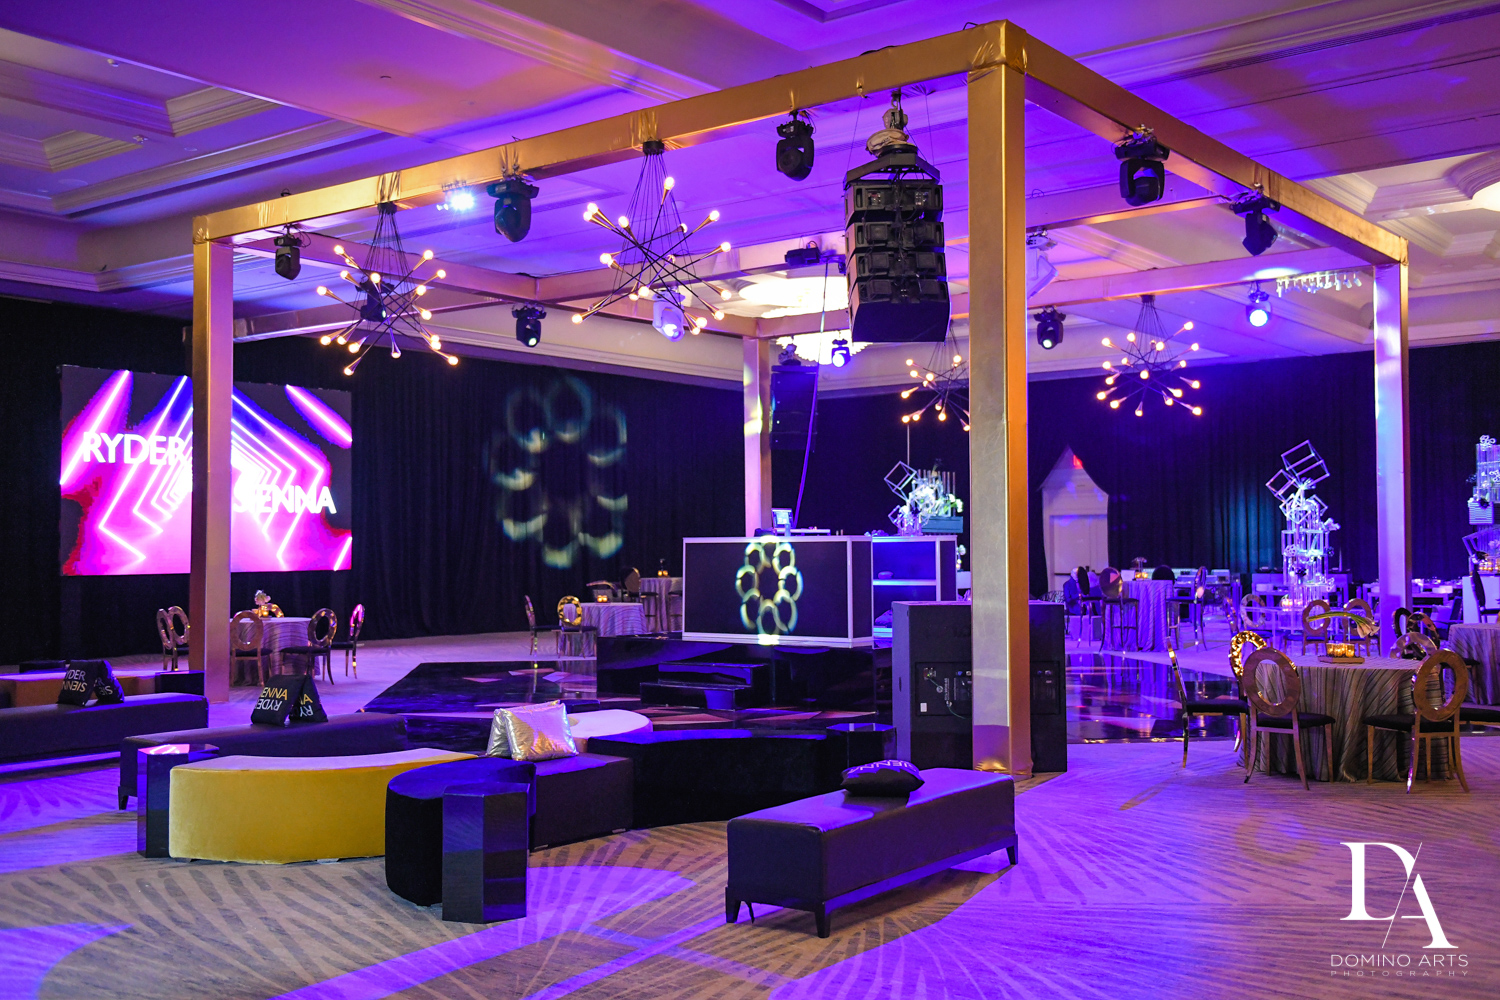 jose graterol designs at Designer invitations at Stylish Architectural B'Nai Mitzvah at the NEW JW Marriott Miami Turnberry Resort & Spa by Domino Arts Photography